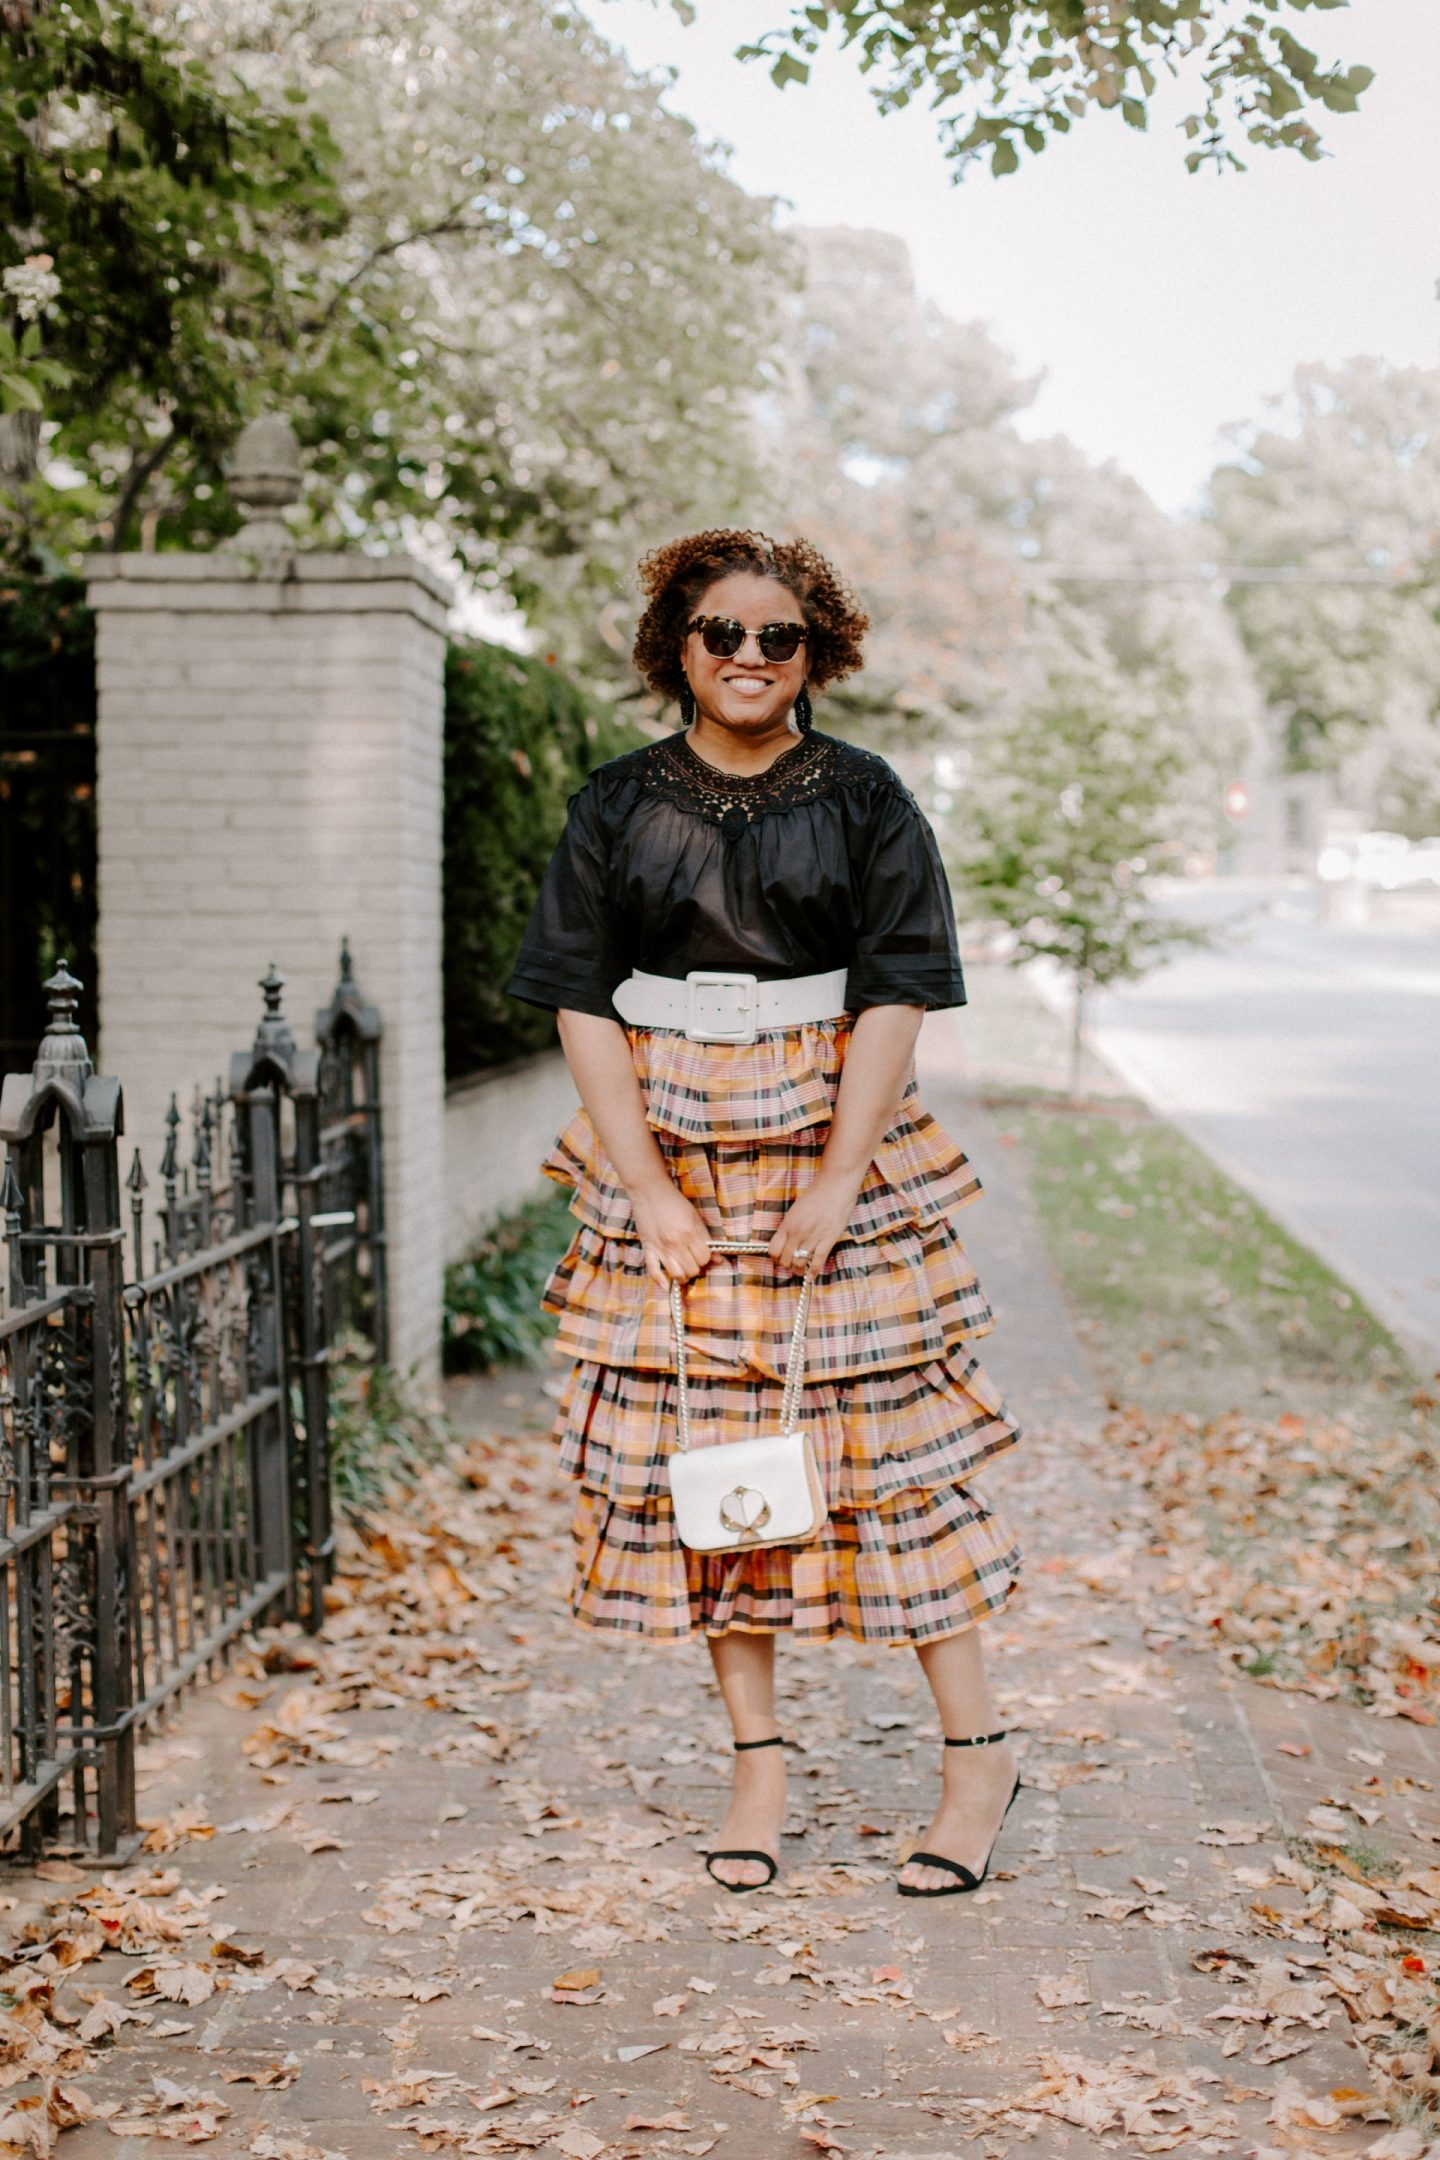 Fall Clothing by popular Kentucky fashion blog, Really Rynetta: image of a woman standing outside on a sidewalk and wearing a J. Crew Ruffle maxi skirt, J. Crew Crochet top in cotton voile, black bead earrings, x Atlantic-Pacific Covered Buckle Stretch Belt HALOGEN, Kate Spade sandals, and holding a Kate Spade bag.